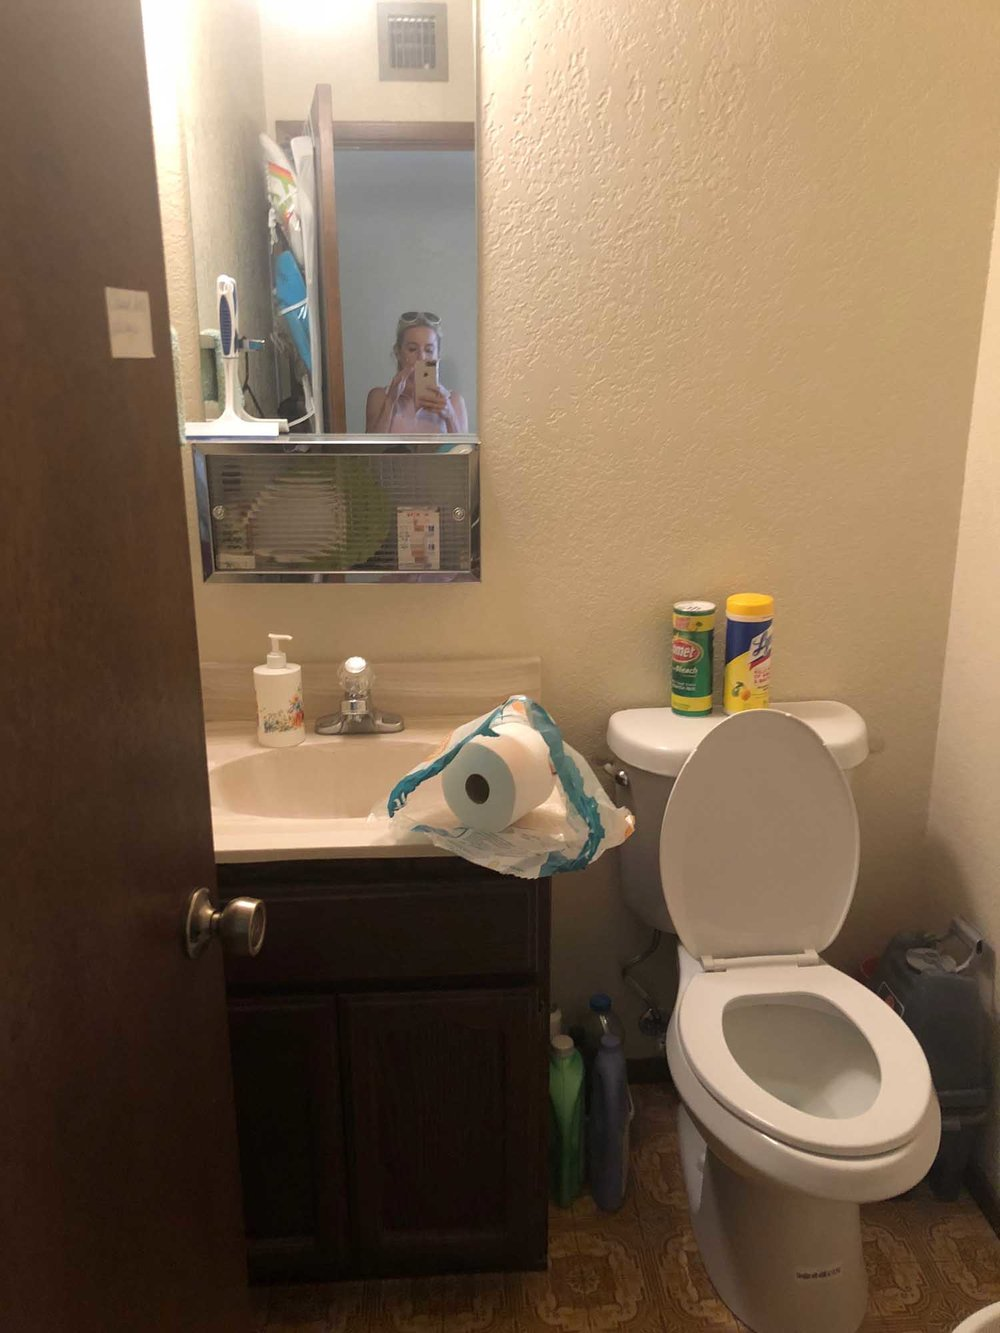 Old toilet with sink and faucet